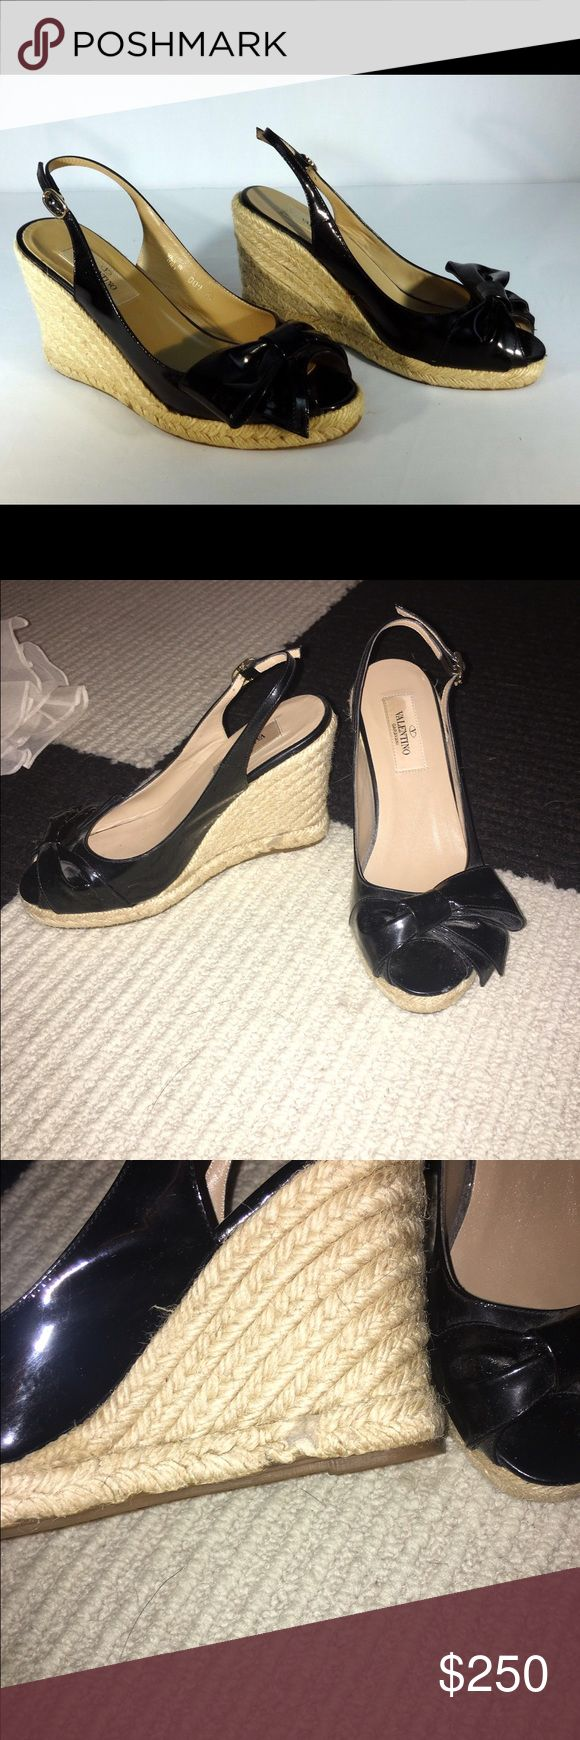 Valentino Wedges Basically brand new Valentino wedges; peep toe, patent and with a bow Valentino Shoes Wedges